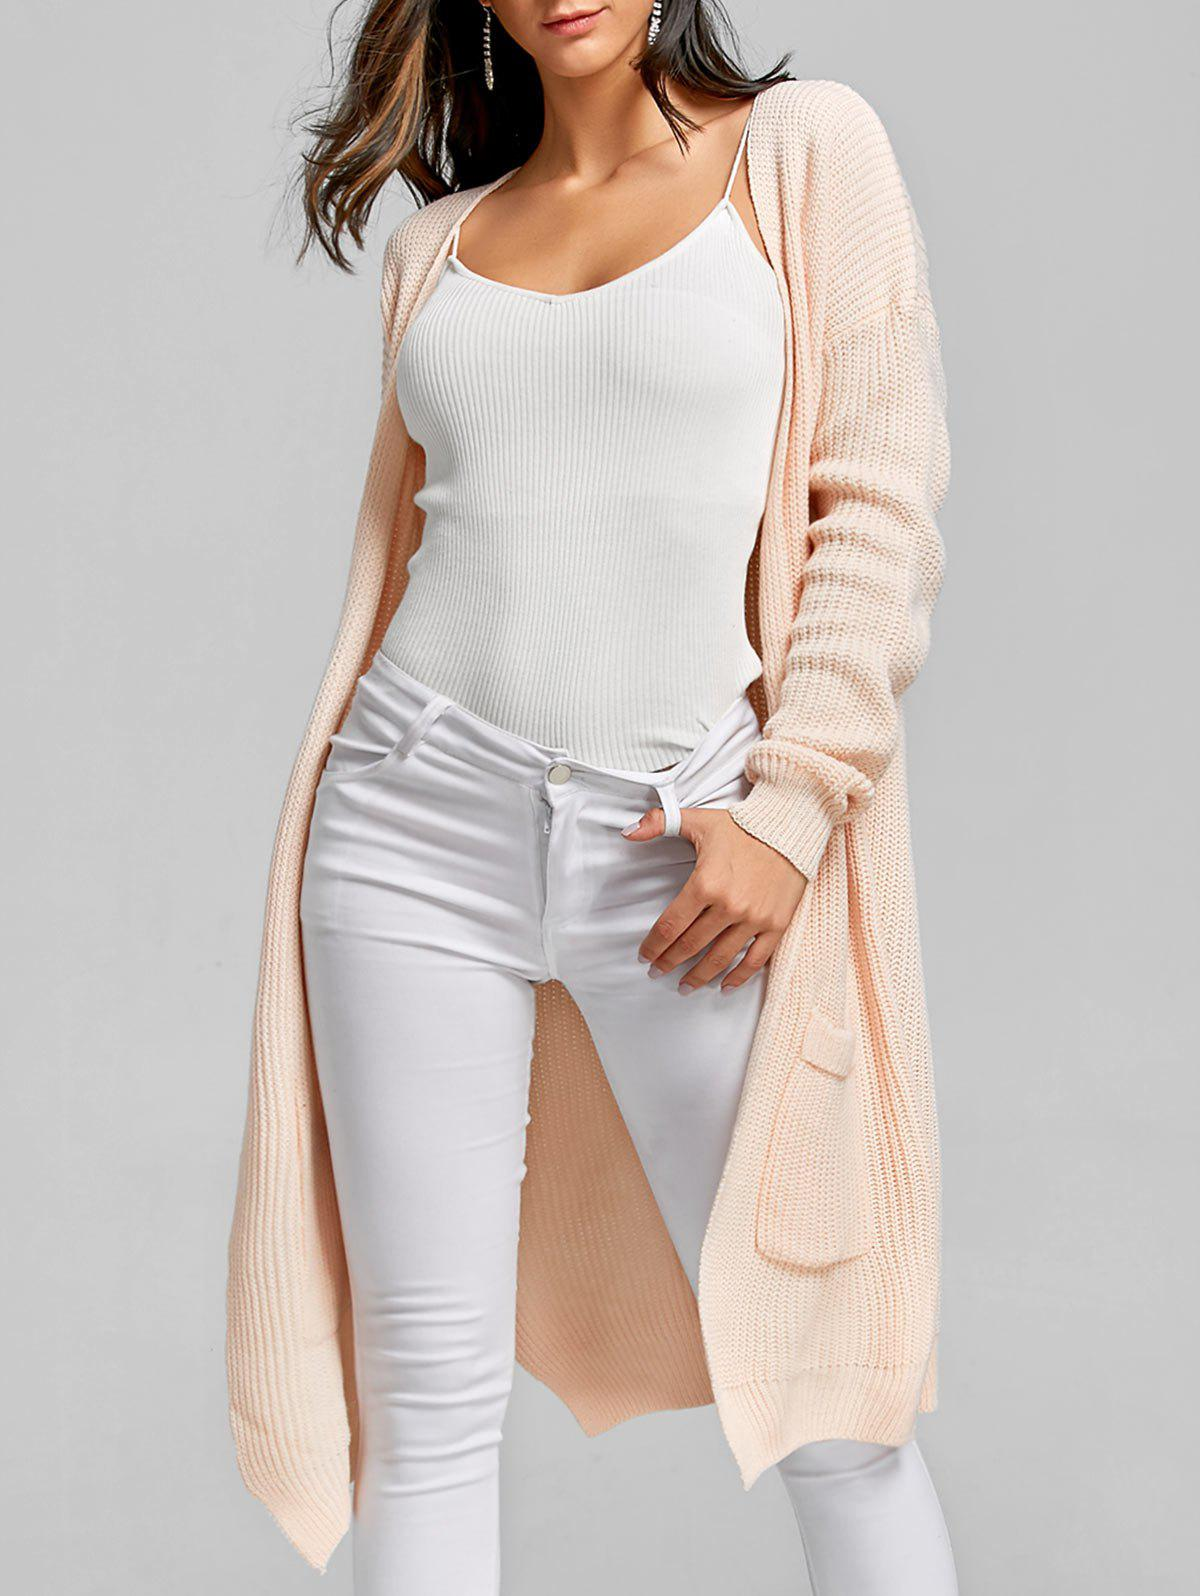 Open Front Pockets Long CardiganWOMEN<br><br>Size: ONE SIZE; Color: PINK; Type: Cardigans; Material: Acrylic; Sleeve Length: Full; Collar: Collarless; Style: Fashion; Pattern Type: Solid; Season: Fall,Spring; Weight: 0.5500kg; Package Contents: 1 x Cardigan;